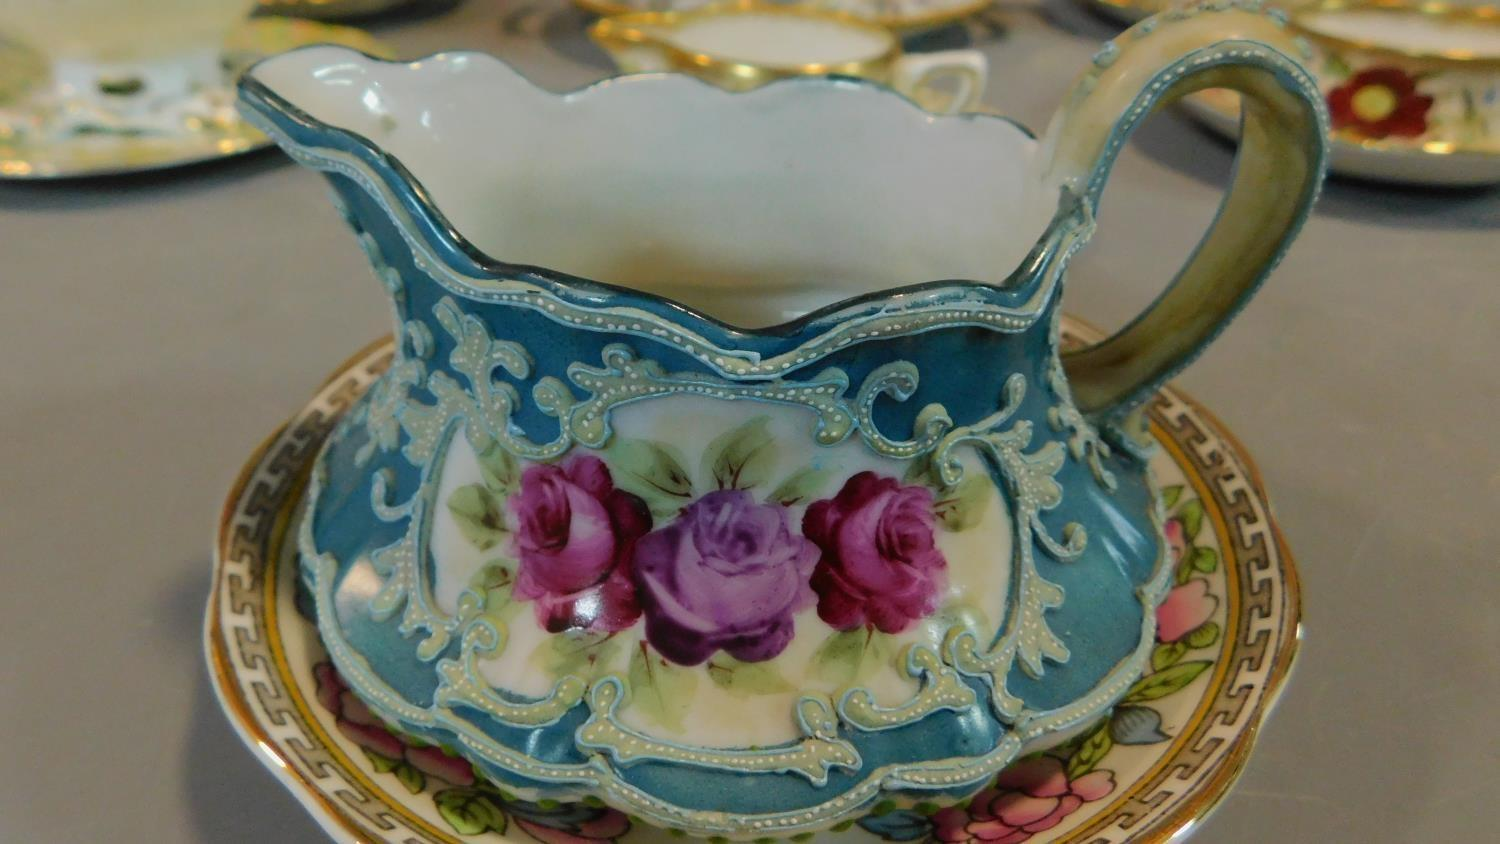 A miscellaneous collection of Victorian and later porcelain, vase, cups, saucers etc. - Image 2 of 14